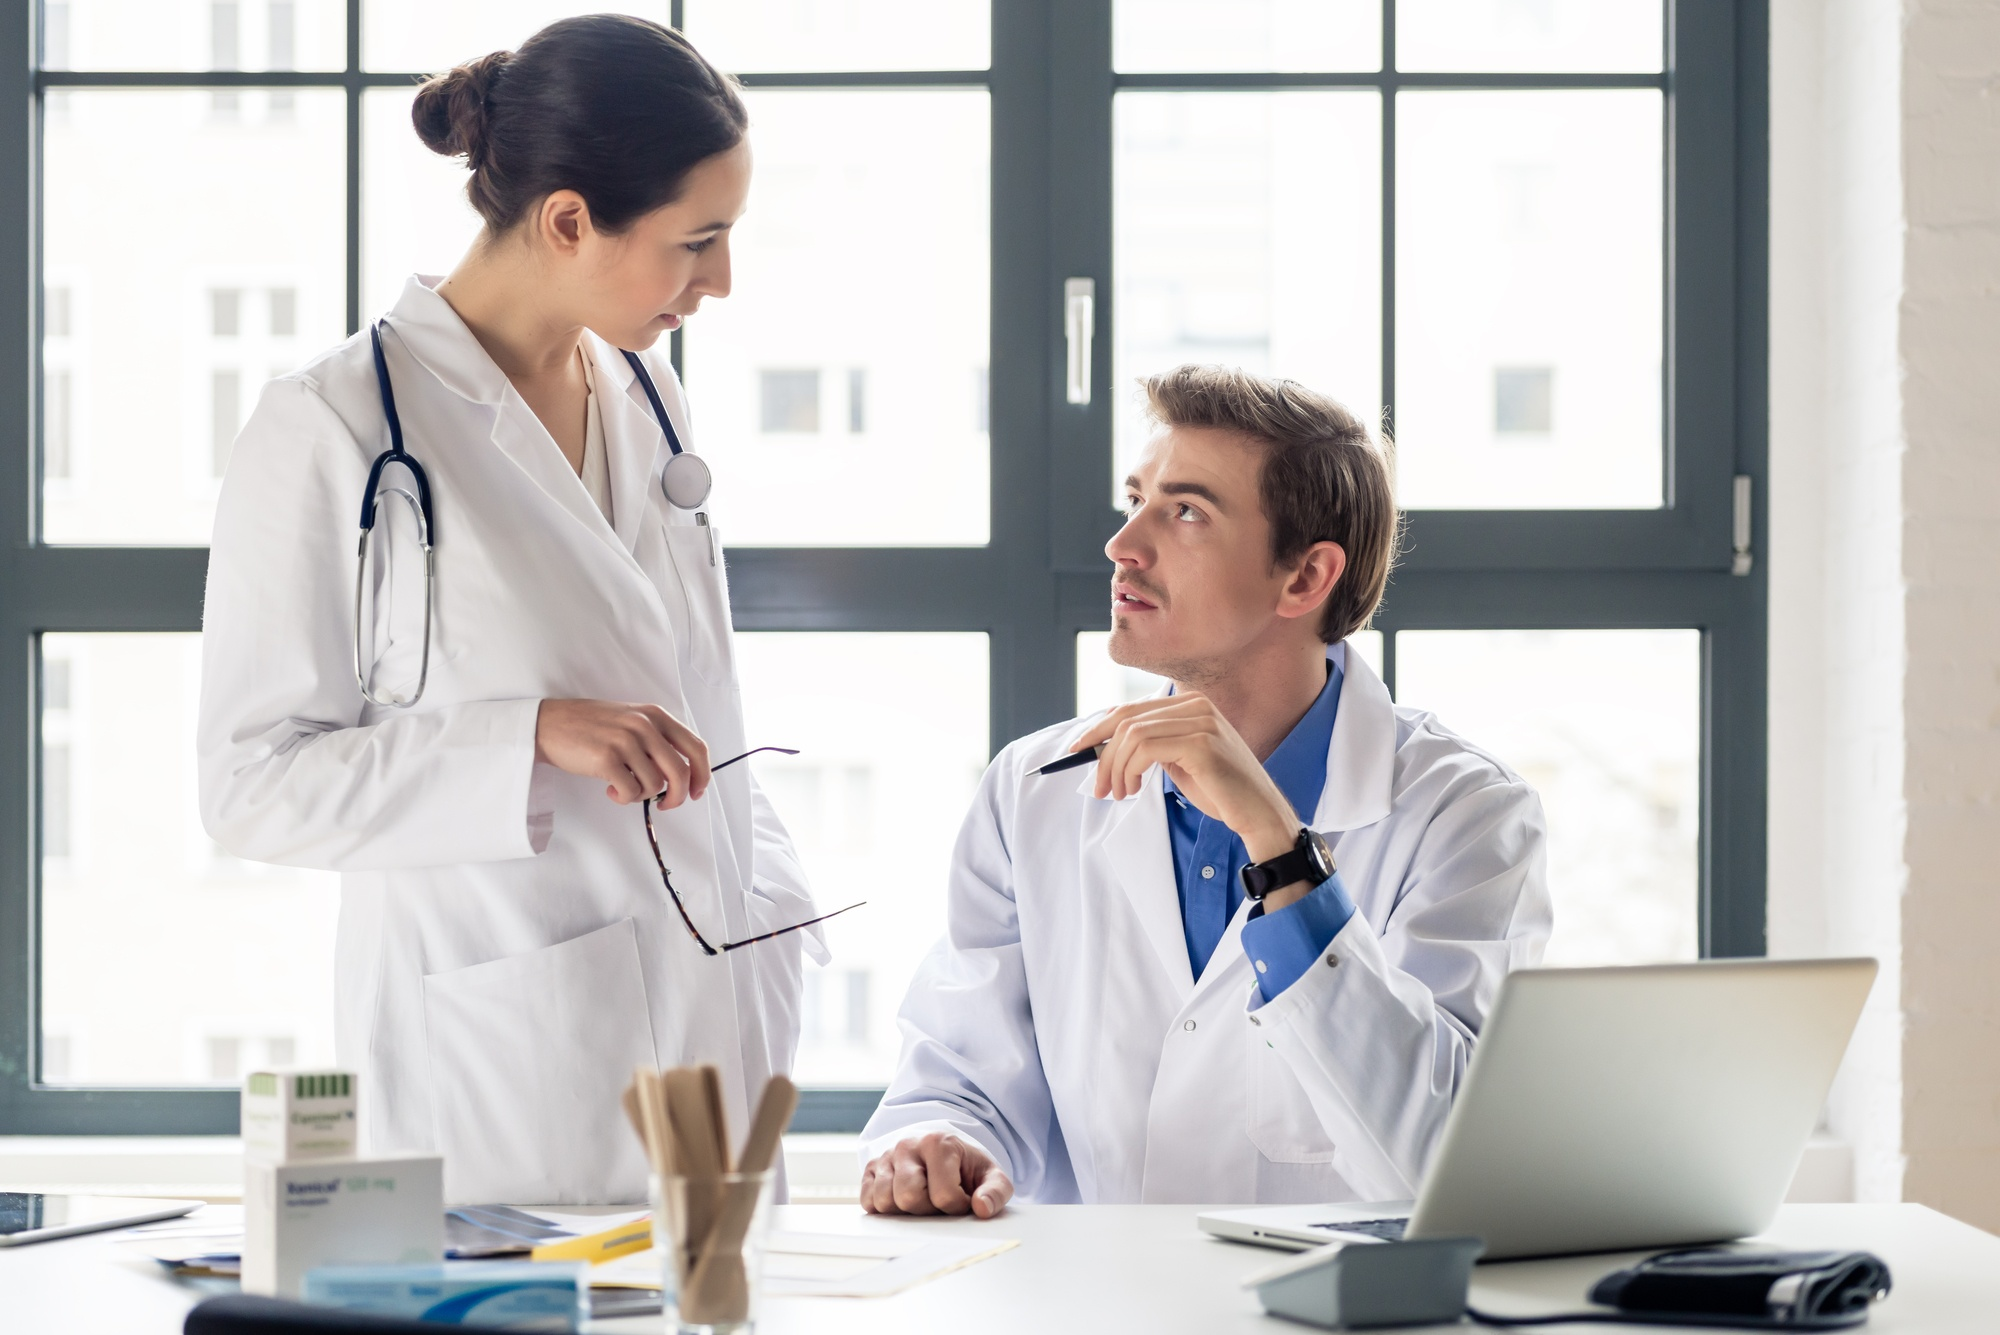 two doctors discussing medical marketing solutions pitfalls downfall social media emails paid social.jpg